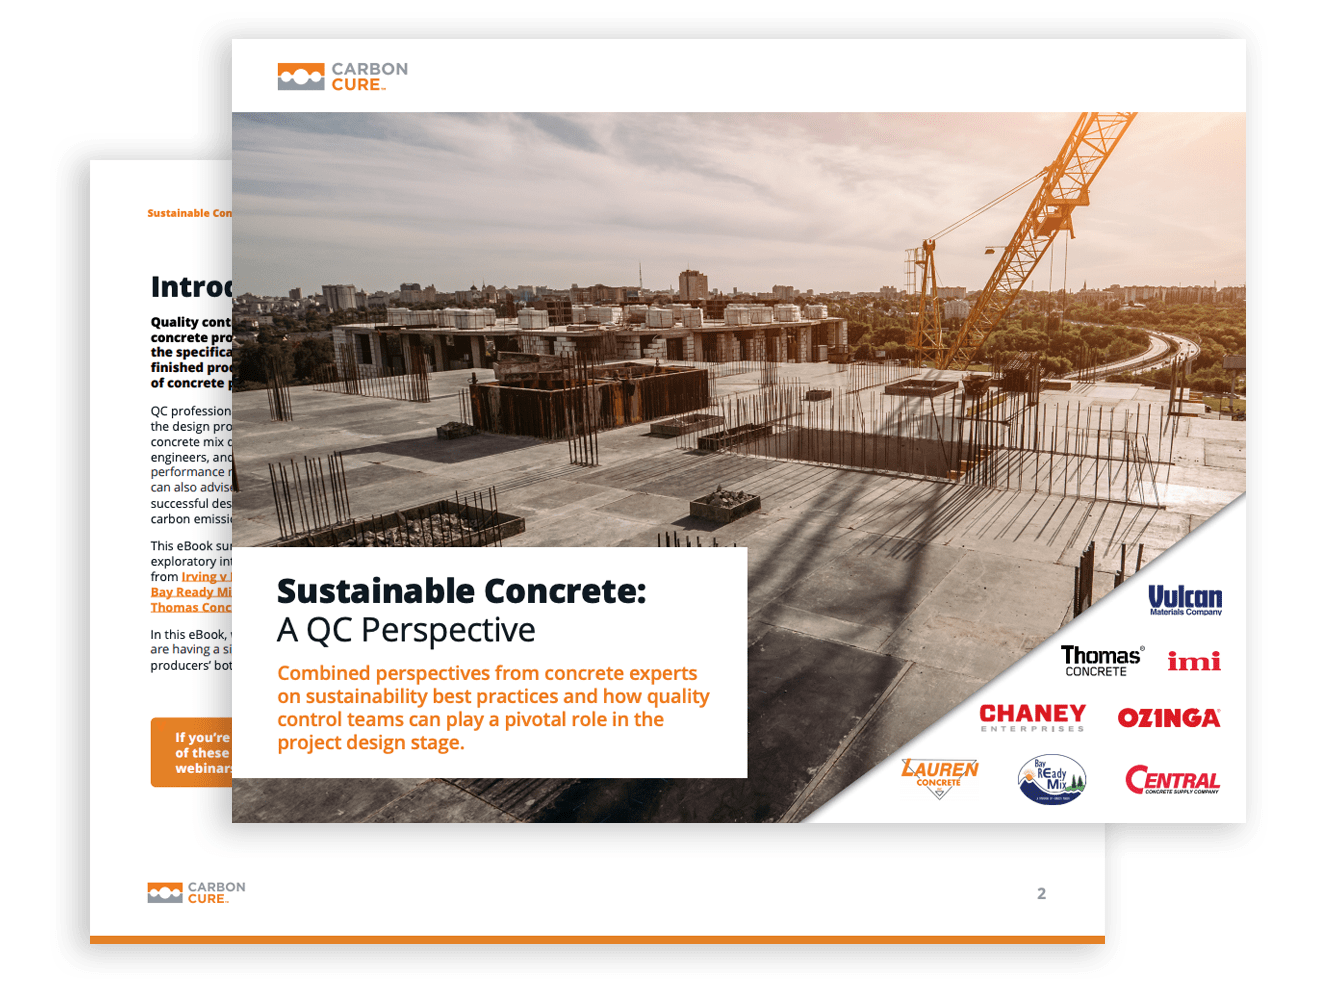 Sustainable Concrete: A QC Perspective